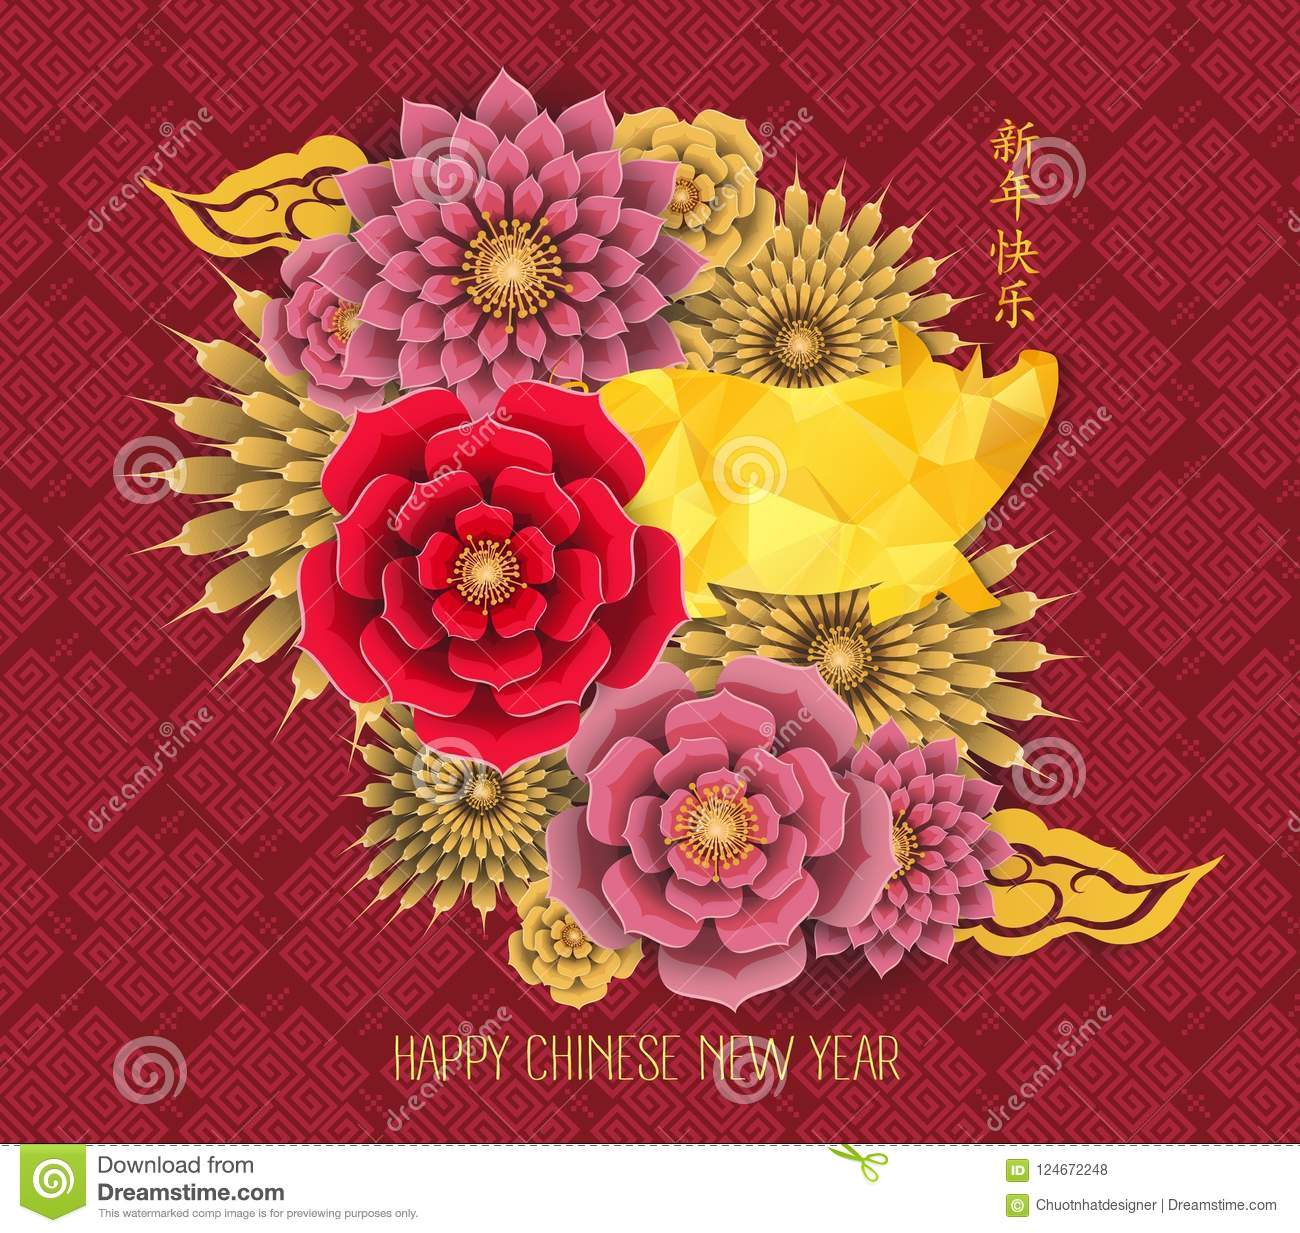 happy chinese new year 2019 zodiac sign with gold paper cut art and craft style on color background chinese characters mean happy new year